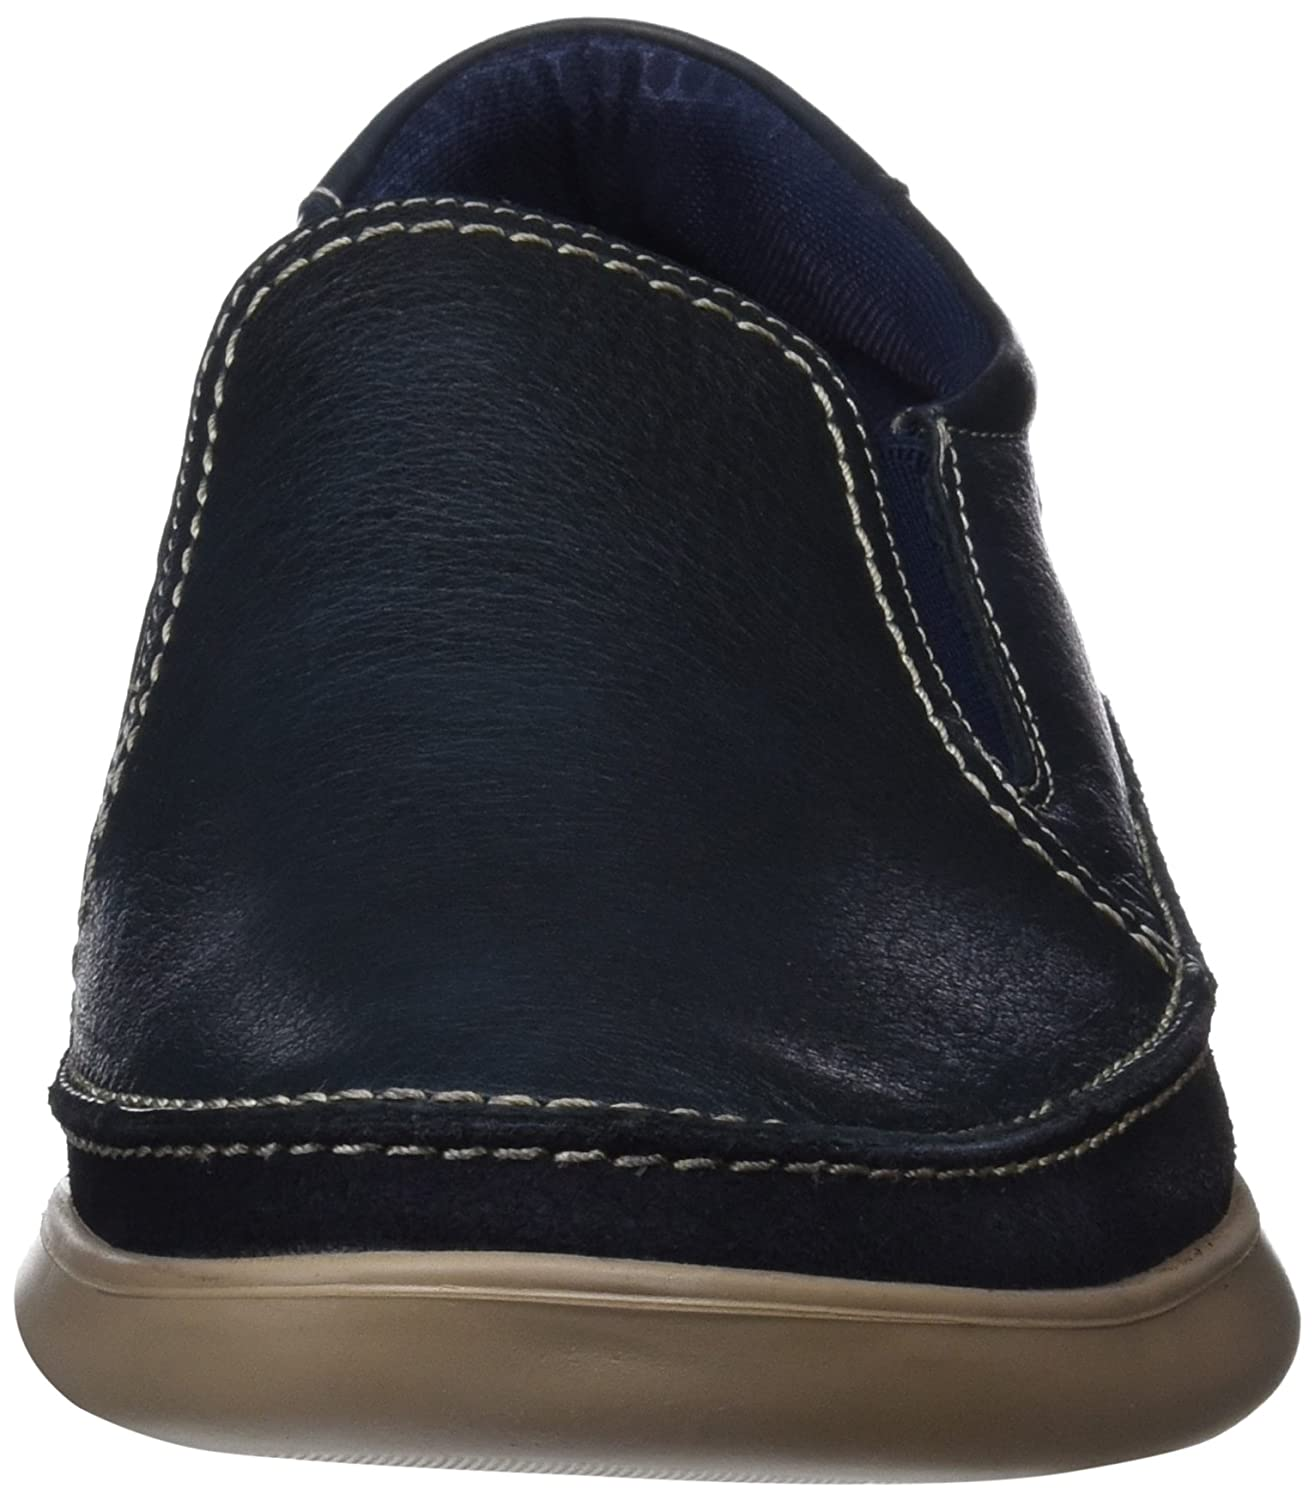 46e881eb Callaghan Men's Starman Loafers: Amazon.co.uk: Shoes & Bags